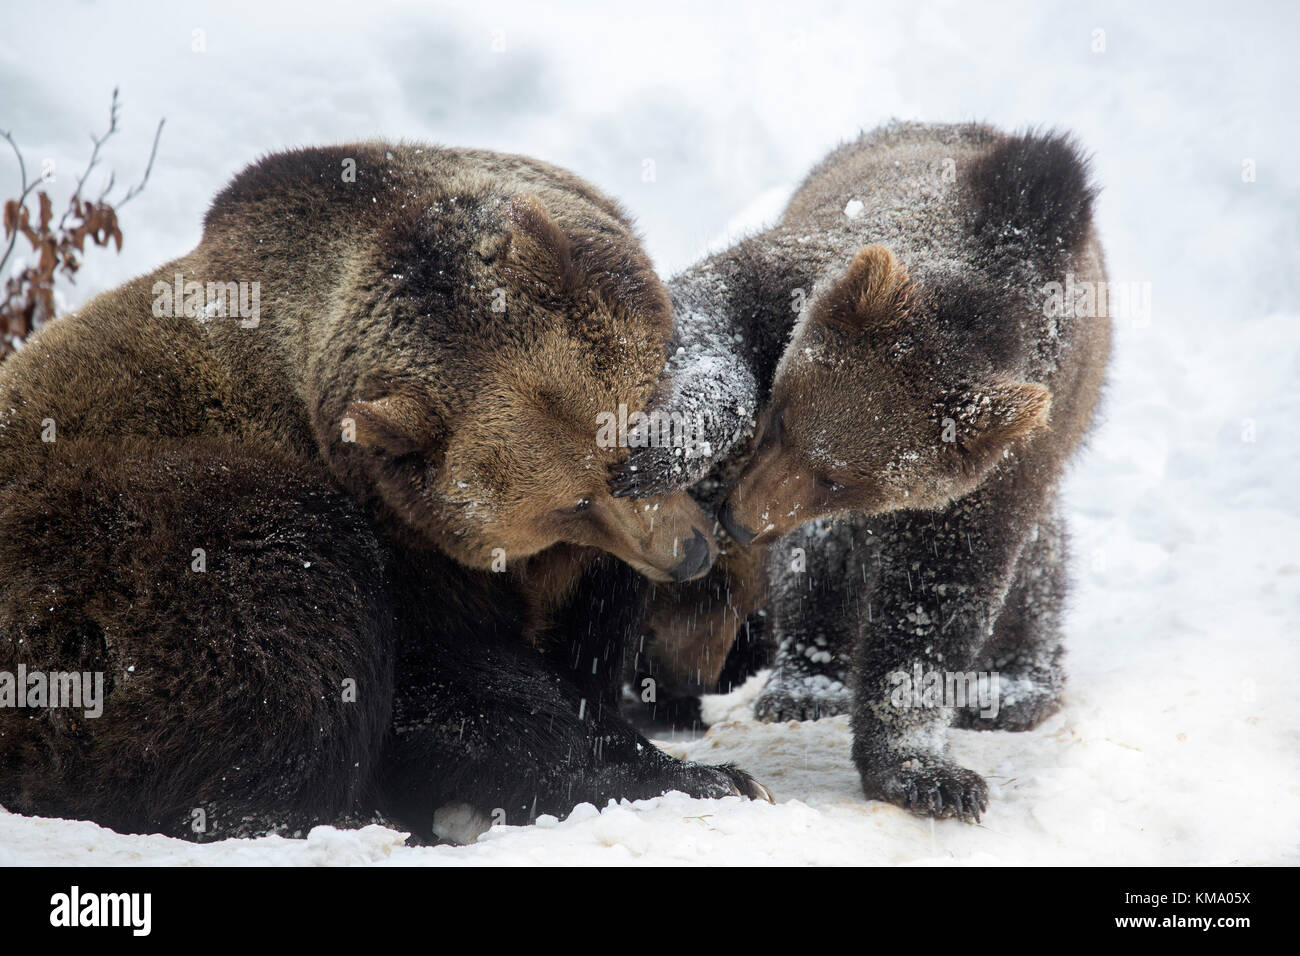 Female playing with one-year-old brown bear cub (Ursus arctos arctos) in the snow in winter - Stock Image